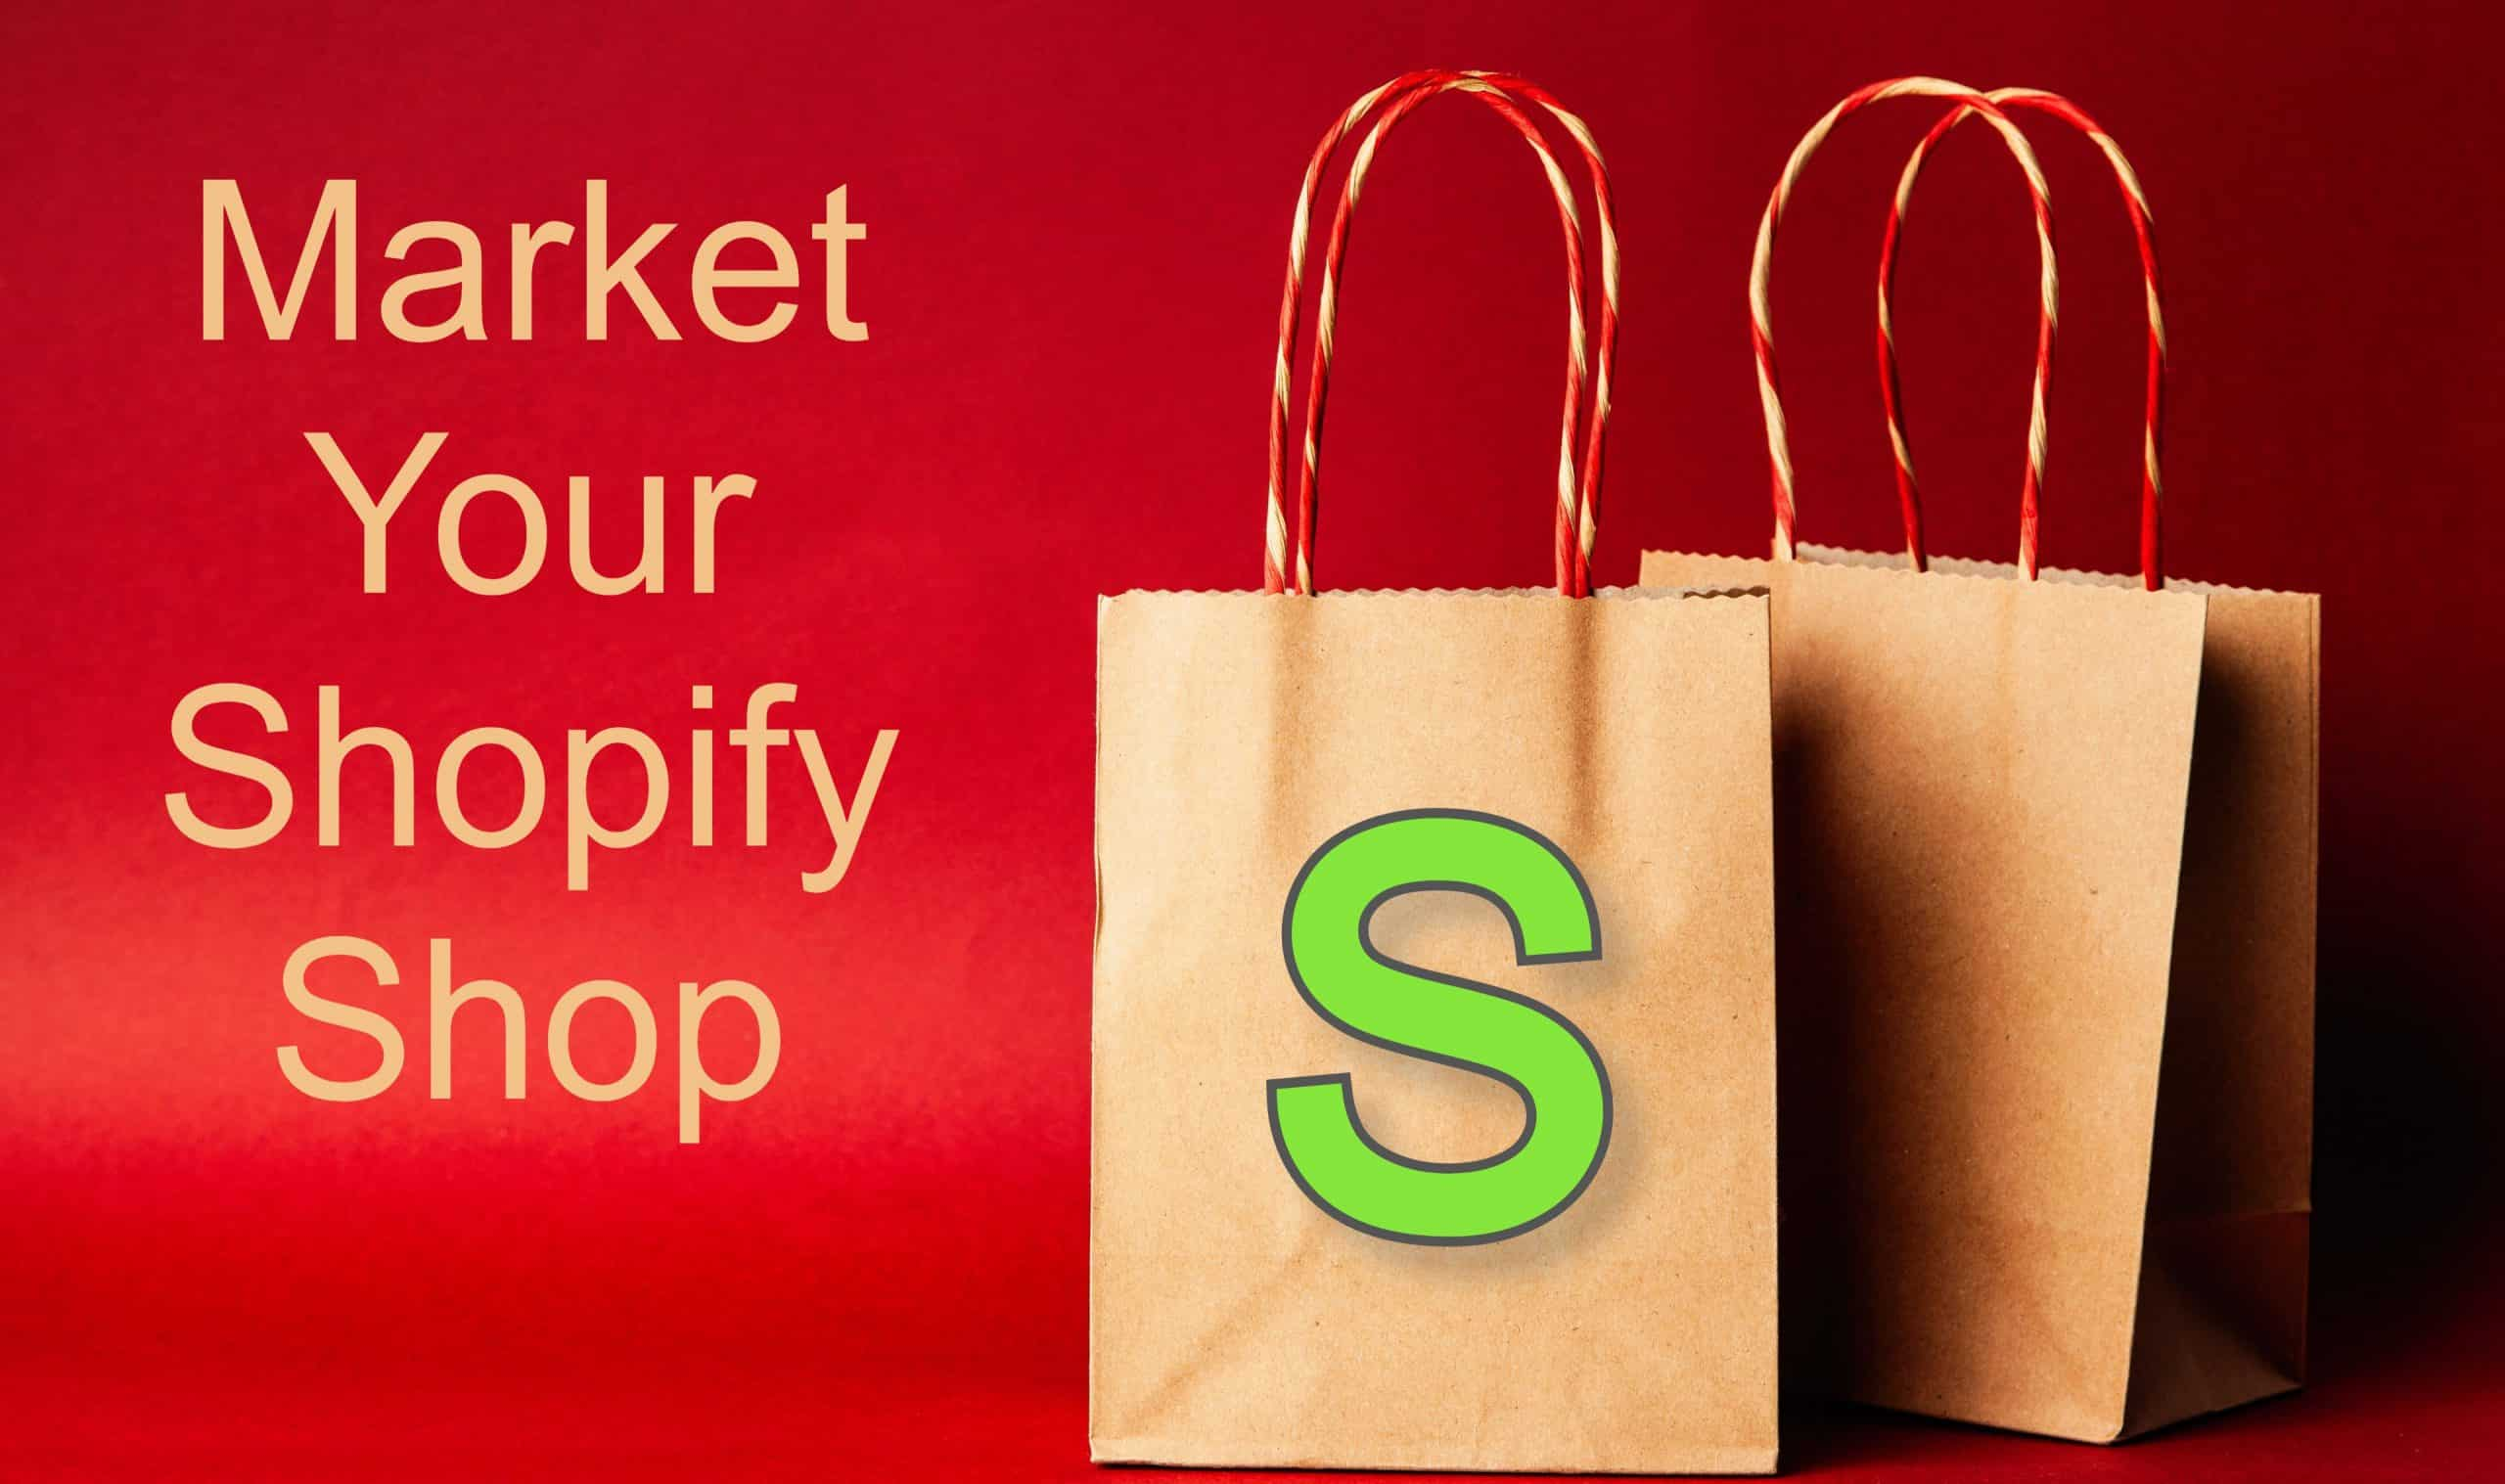 Market your Shopify shop